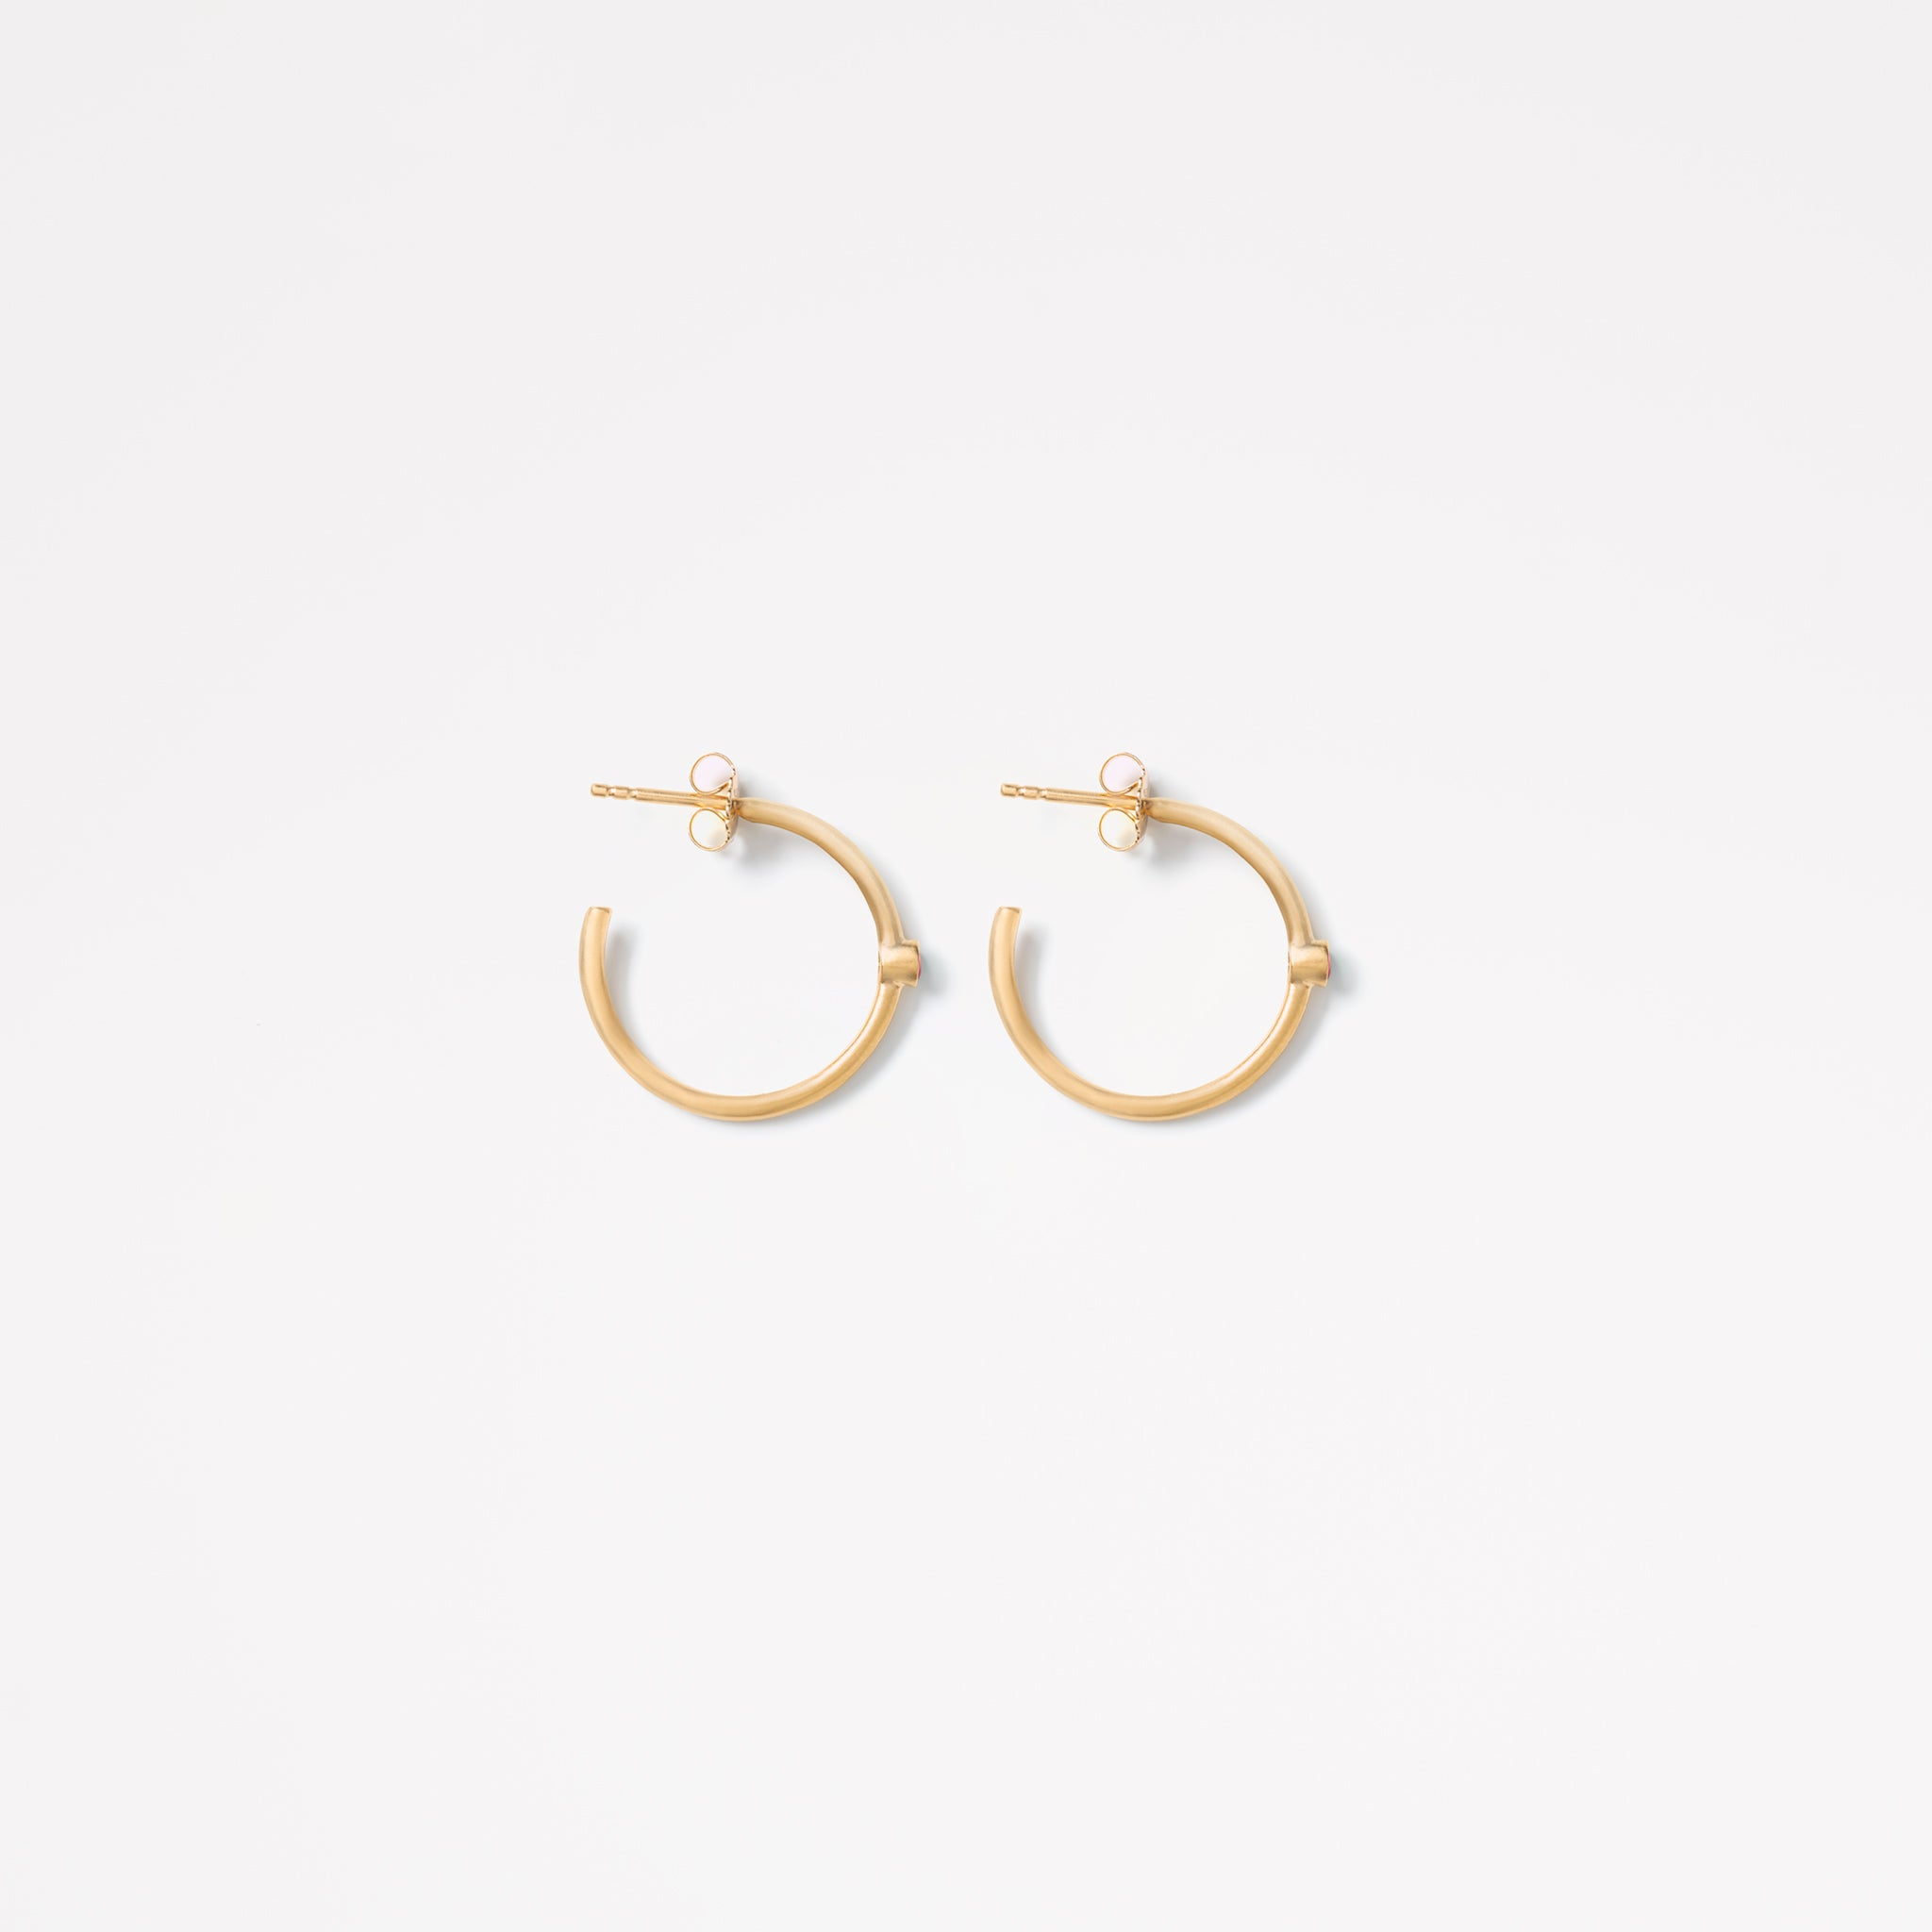 Wanderlust Life large gold hoop Astrea earrings with semi precious ruby gemstones. Stack your hoops with the Astrea petite gold hoop ruby earrings. Wanderlust Life jewellery designed in the UK.